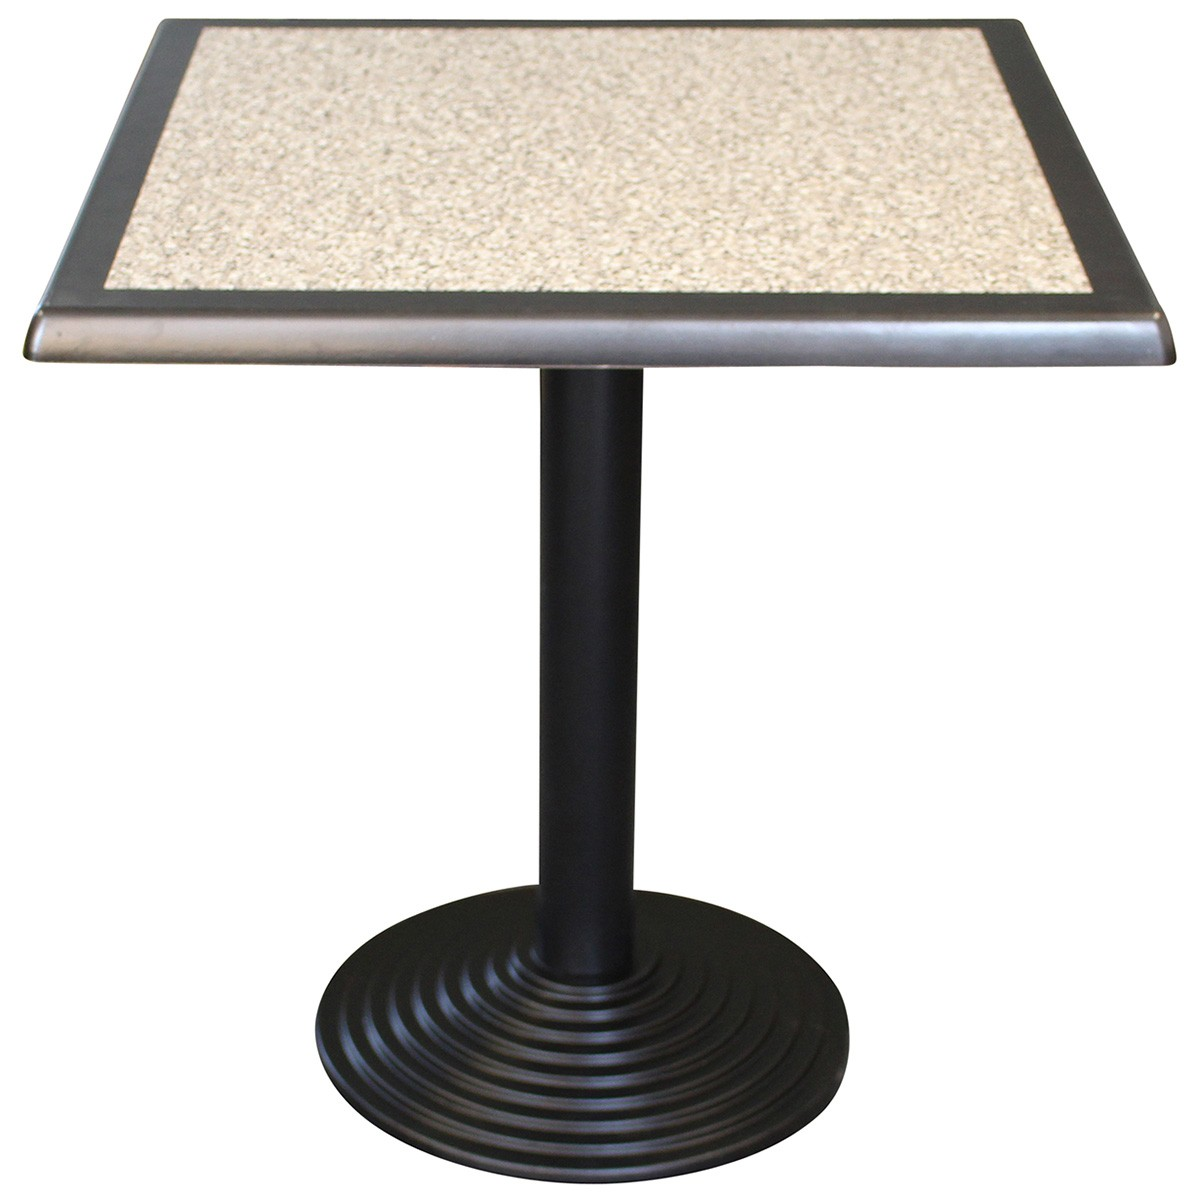 Cascina Commercial Grade Square Dining Table, 60cm, Pebble / Black